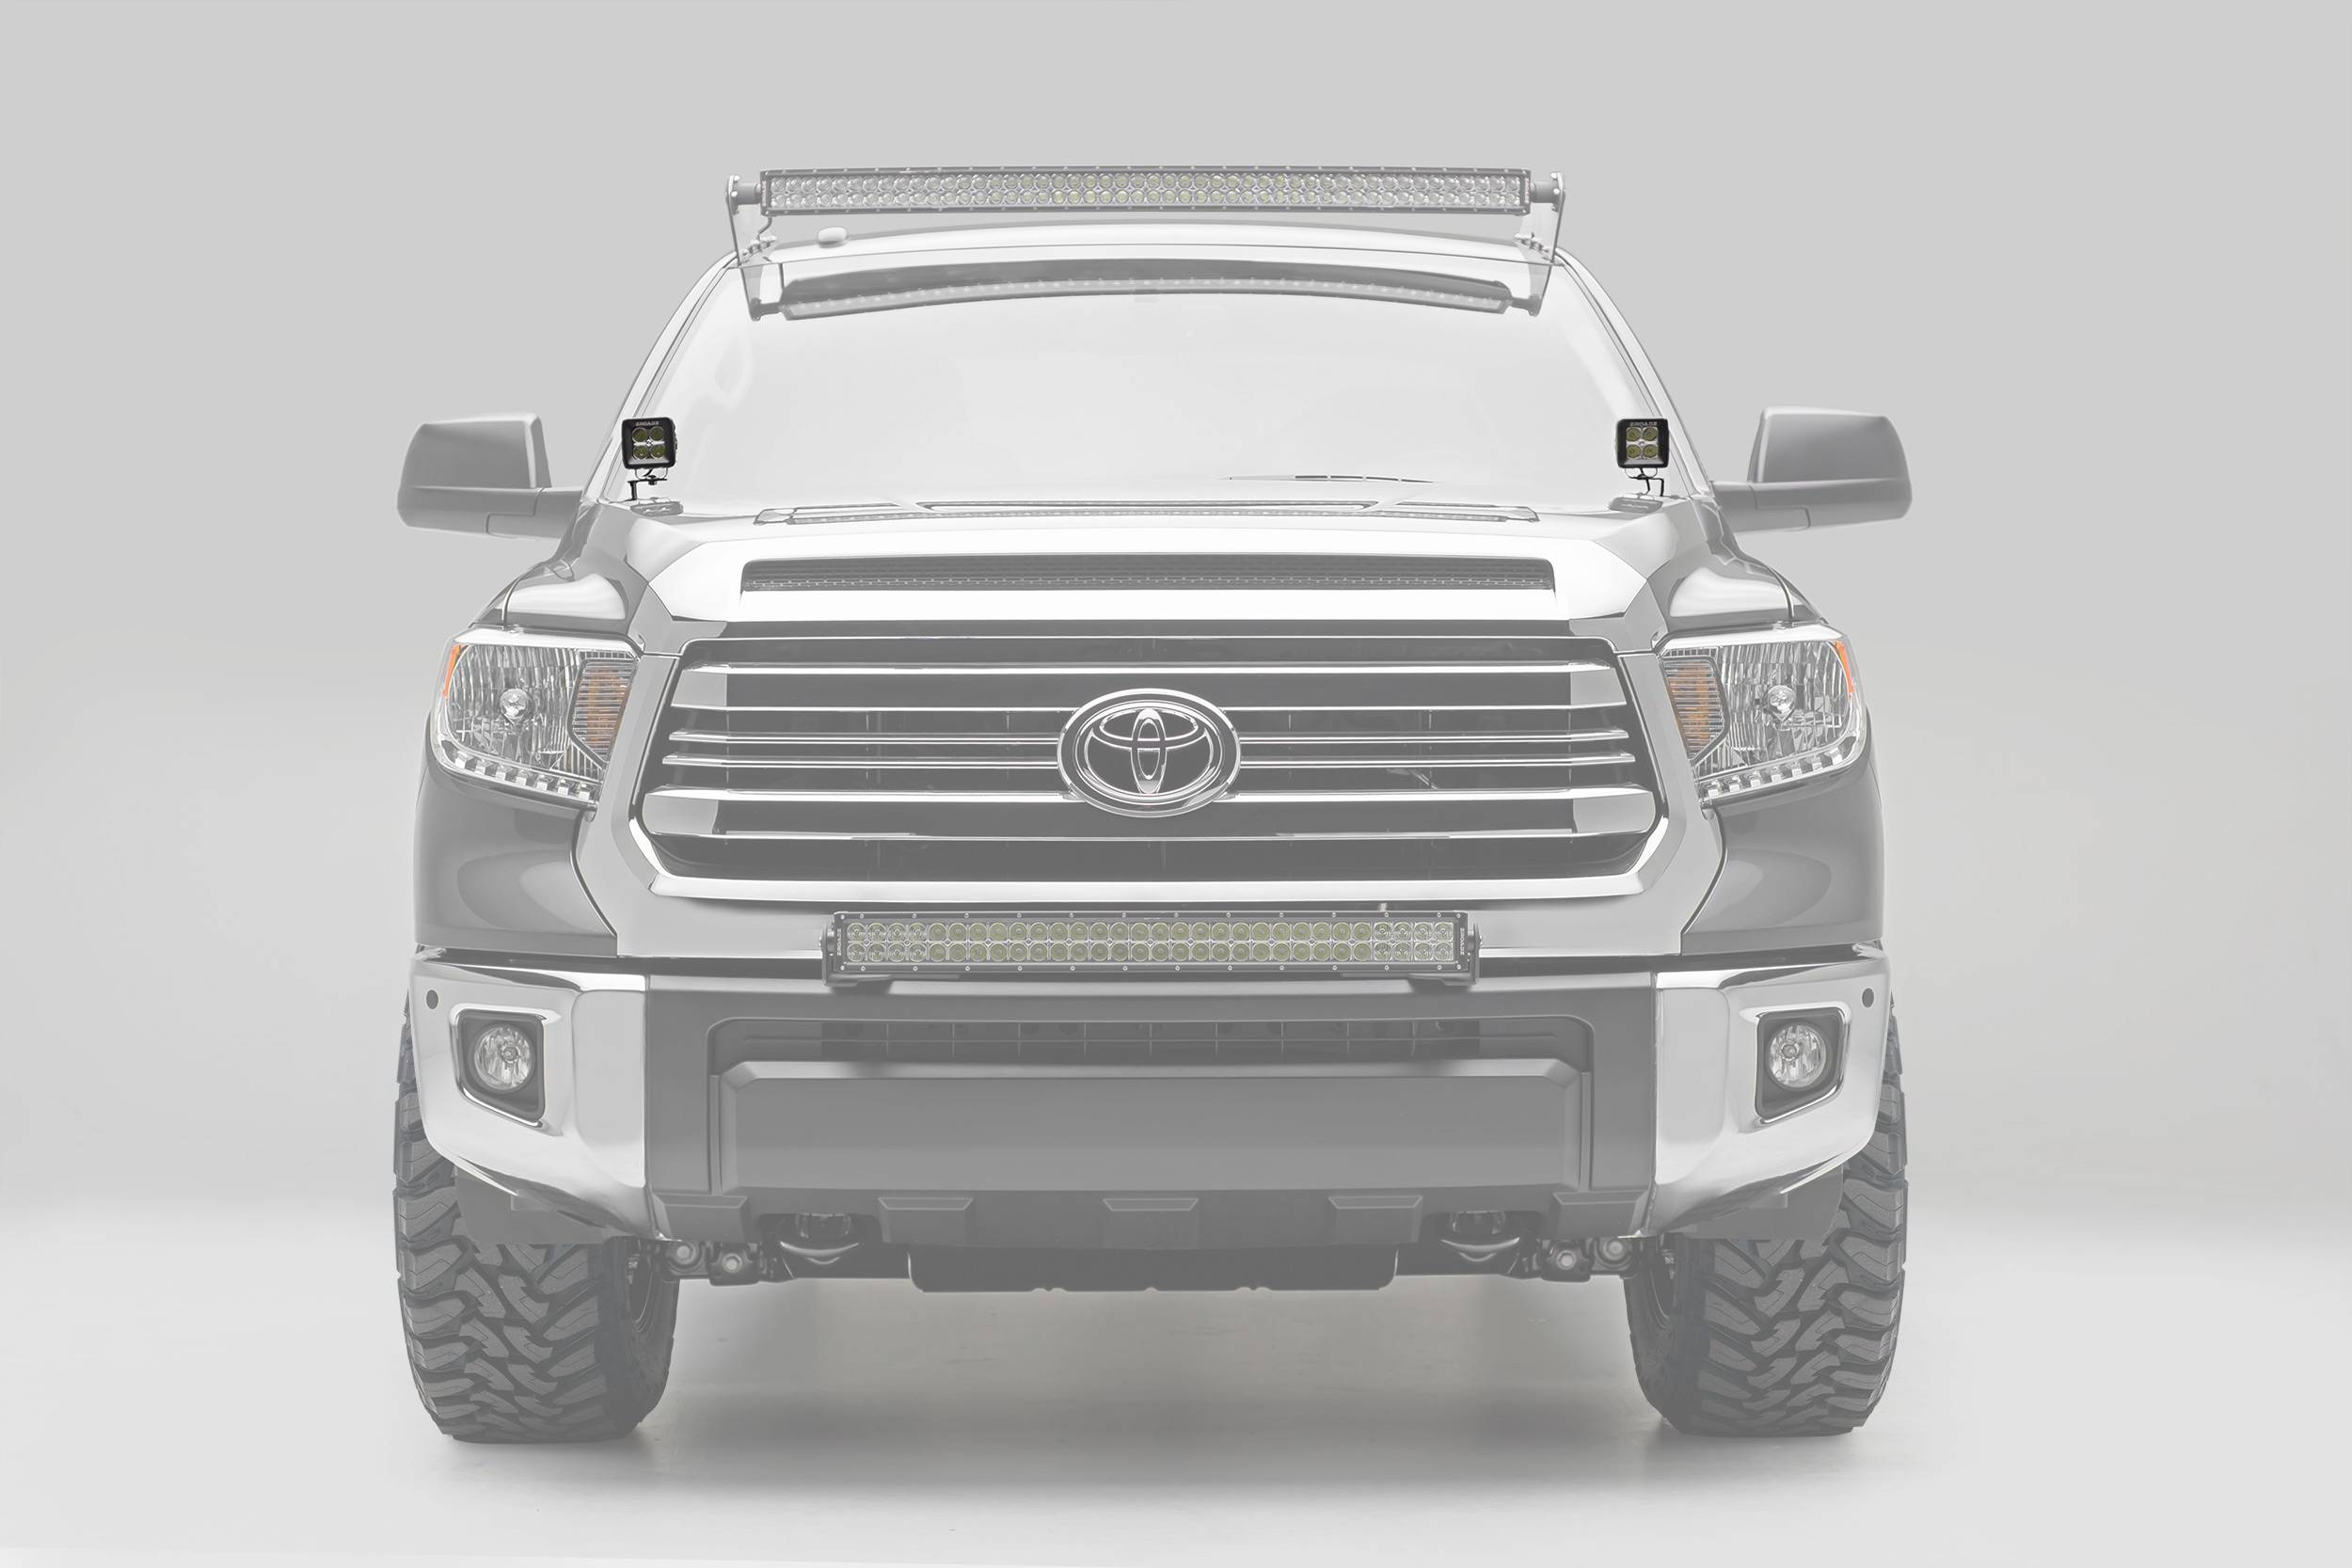 ZROADZ                                             - 2014-2020 Toyota Tundra Hood Hinge LED Kit, Incl. (2) 3 Inch LED Pod Lights - PN #Z369641-KIT2